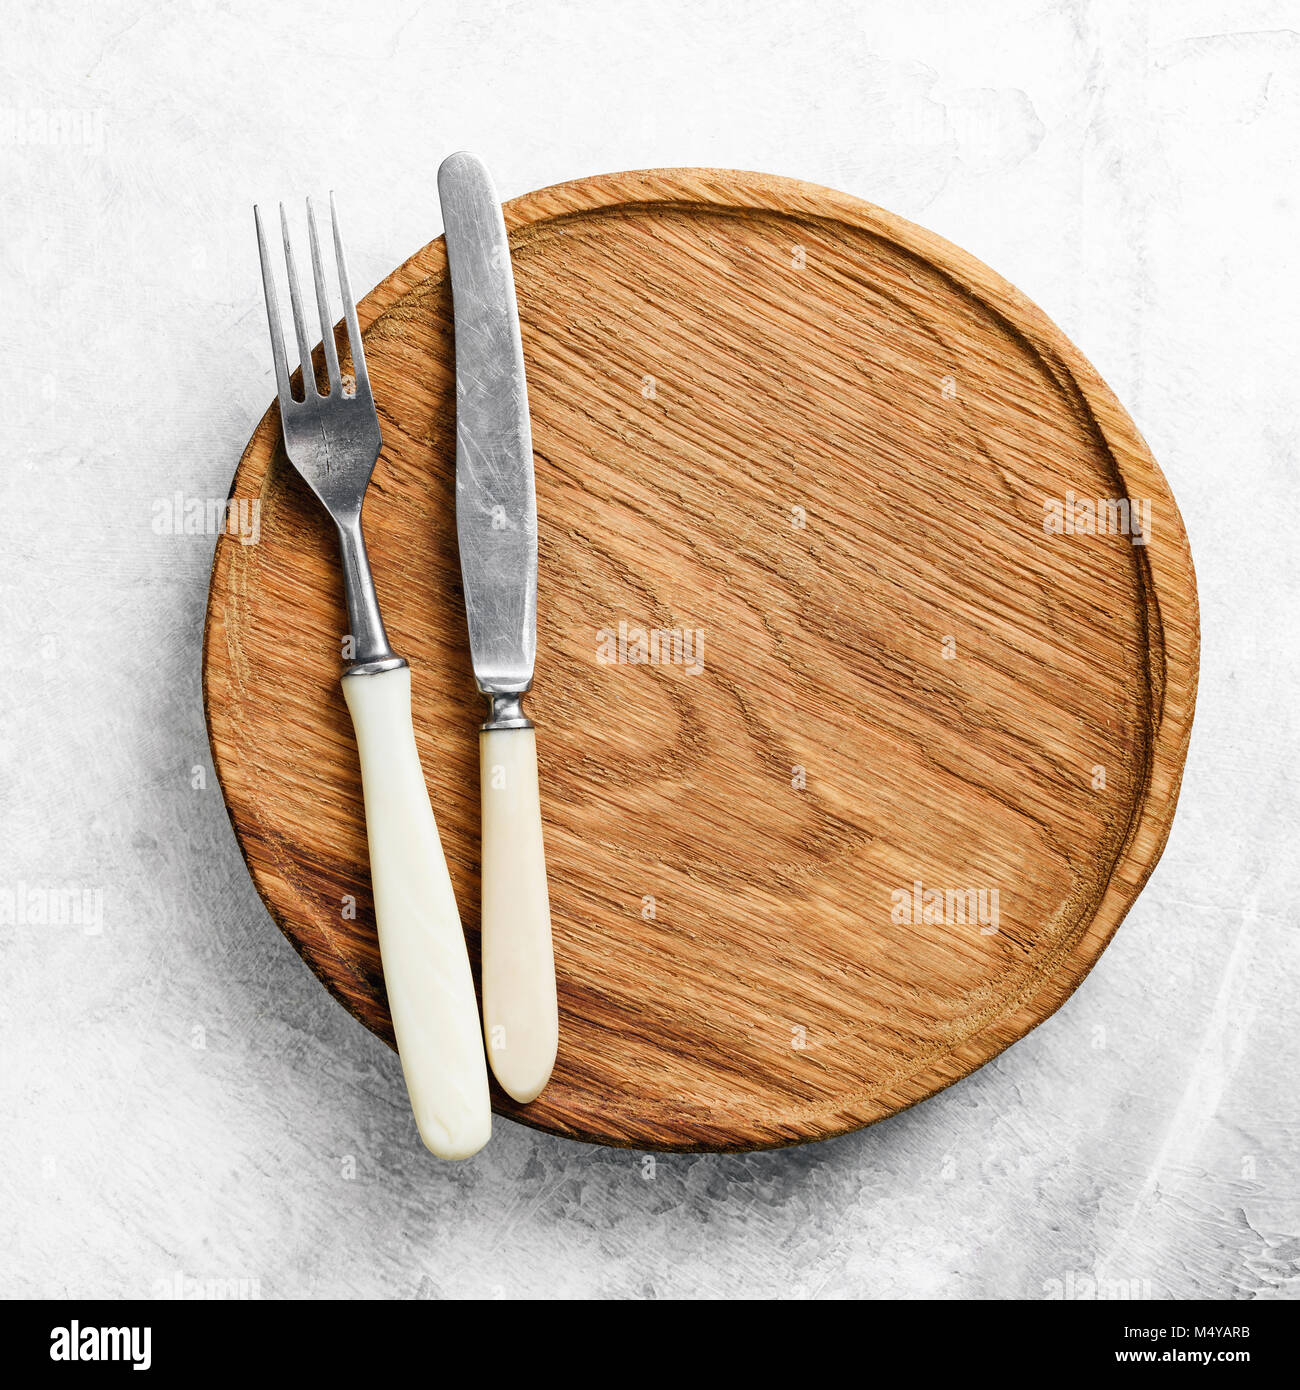 Table setting with vintage cutlery and wooden plate. Restaurant menu food advertising and design template. Square crop & Table setting with vintage cutlery and wooden plate. Restaurant menu ...